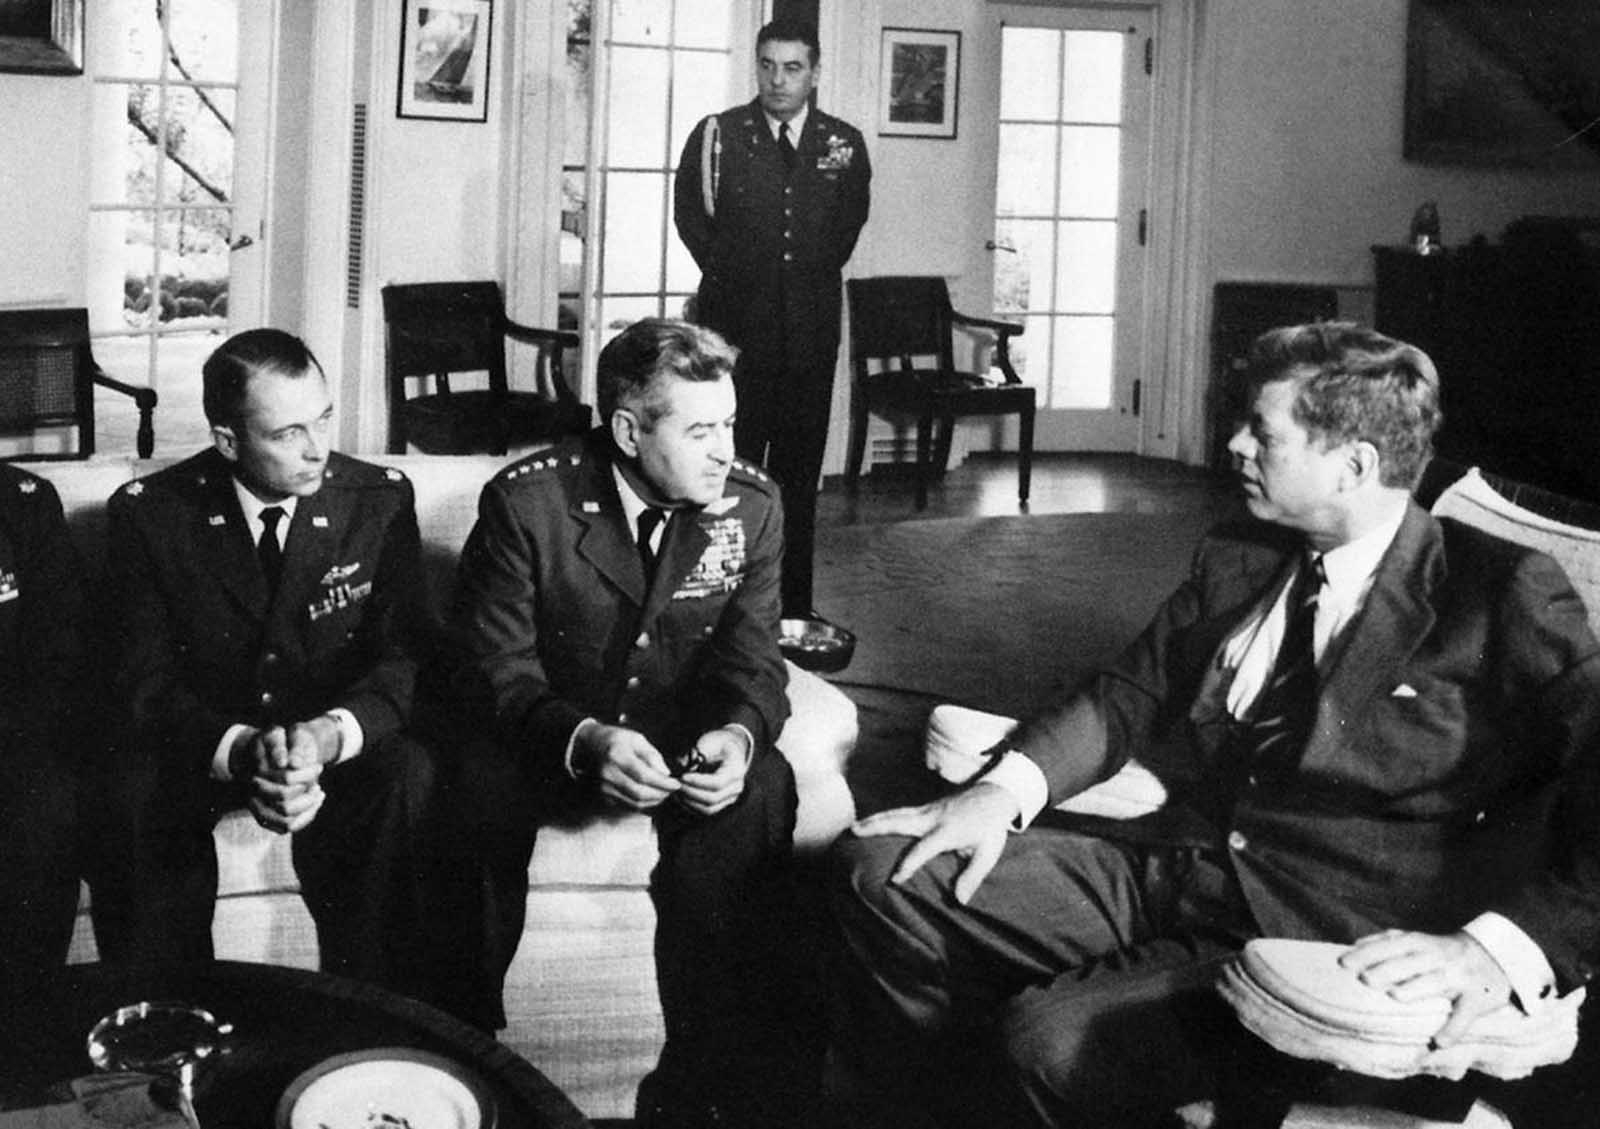 President John F. Kennedy meets with Air Force Maj. Richard Heyser, left, and Air Force Chief of Staff, Gen. Curtis LeMay, center, at the White House in Washington to discuss U-2 spy plane flights over Cuba.